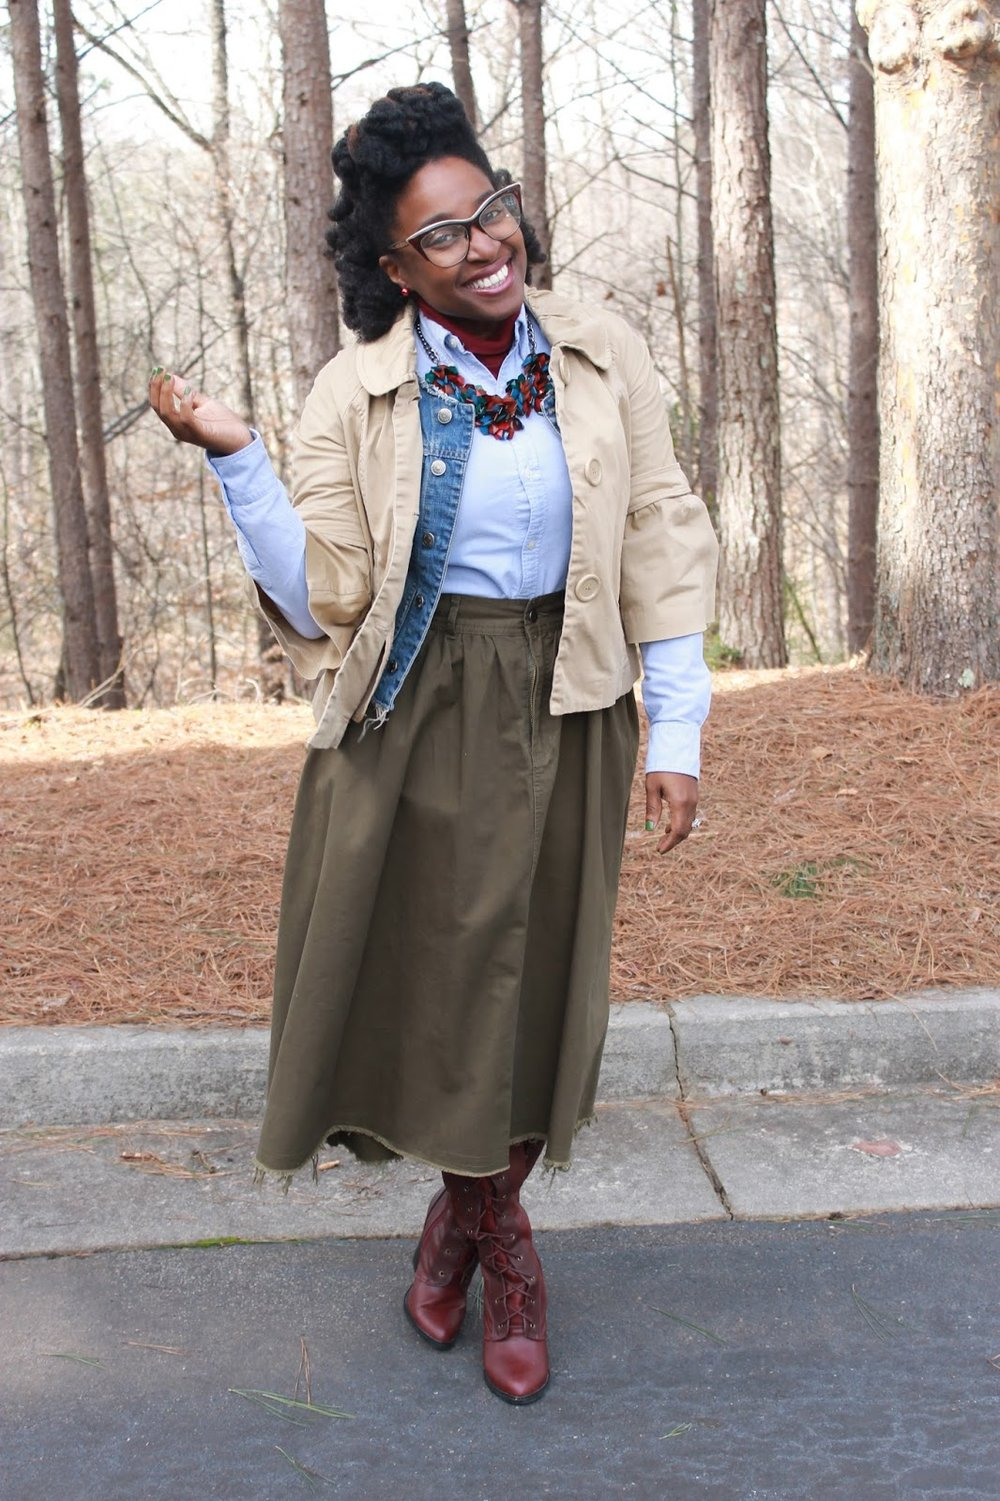 Atlanta blogger, style blogger, Atlanta Style Blogger, Olive skirt, mini trench, turtle neck, denim vest, statement necklace, burgundy boots, crossbody handbag, natural hair, black girl magic, black girl fashion, trendy work wear, Thrifting Atlanta